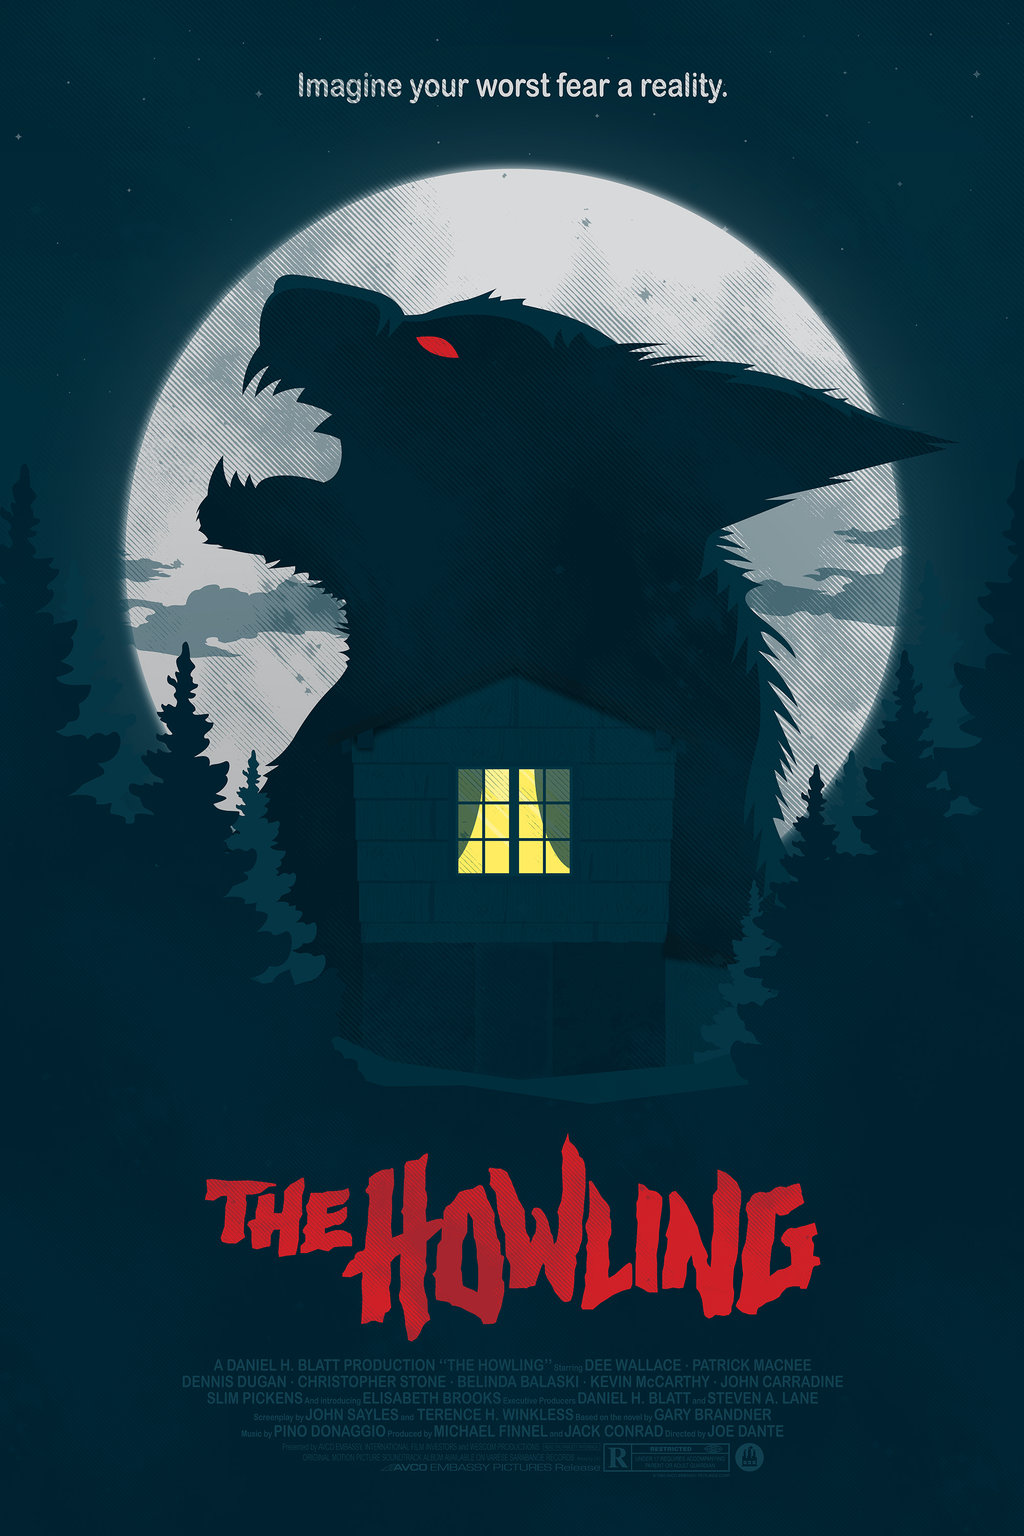 the_howling_movie_poster_by_lafabriquedeposters-d7pqsy1